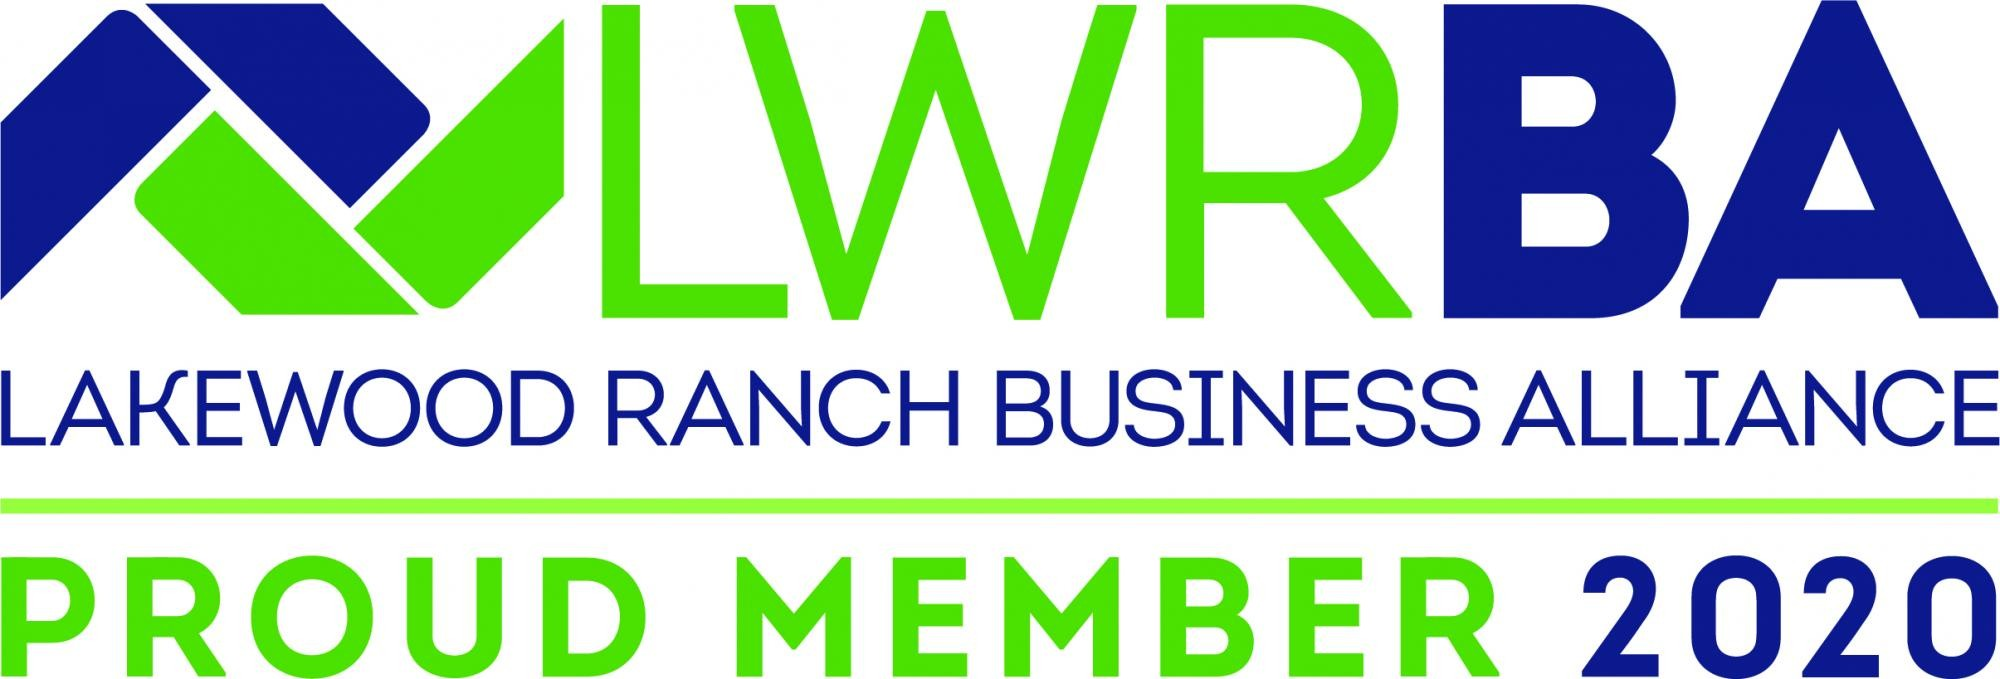 Lakewood Ranch Business Alliance